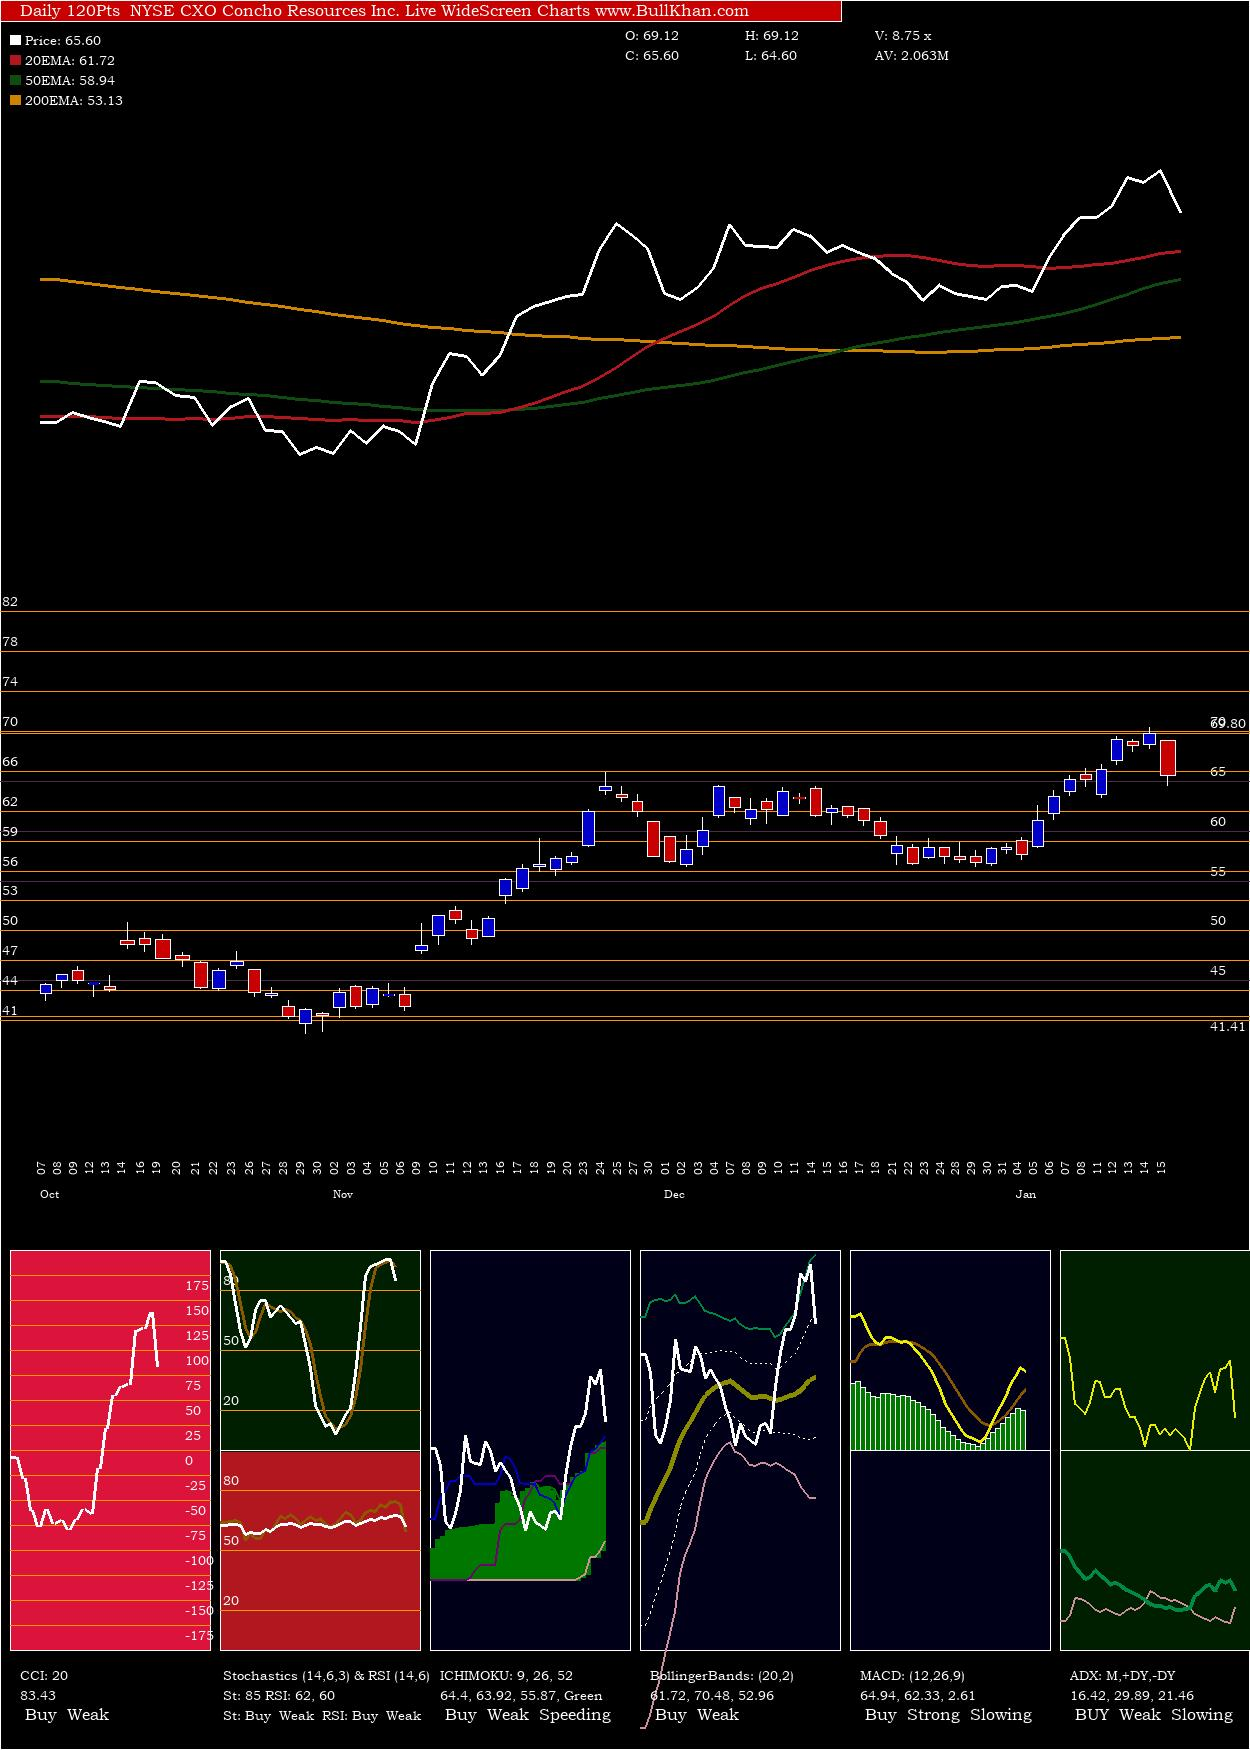 Concho Resources Inc. charts and indicators